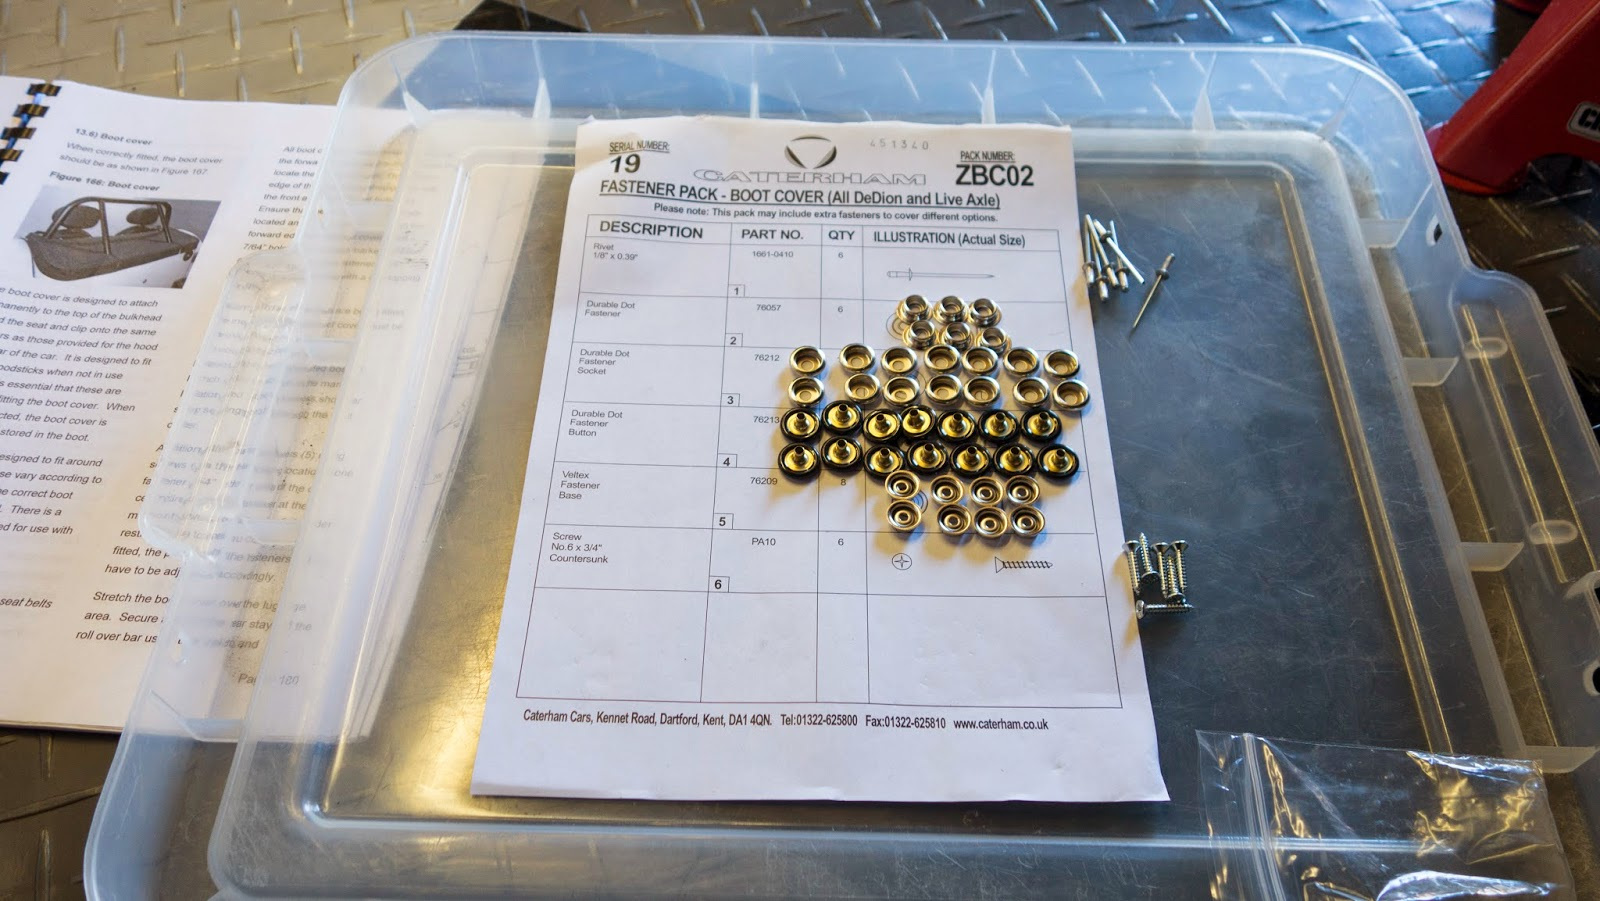 I laid out the dura dot fastener pack to make sure I was using the right ones in the right places.